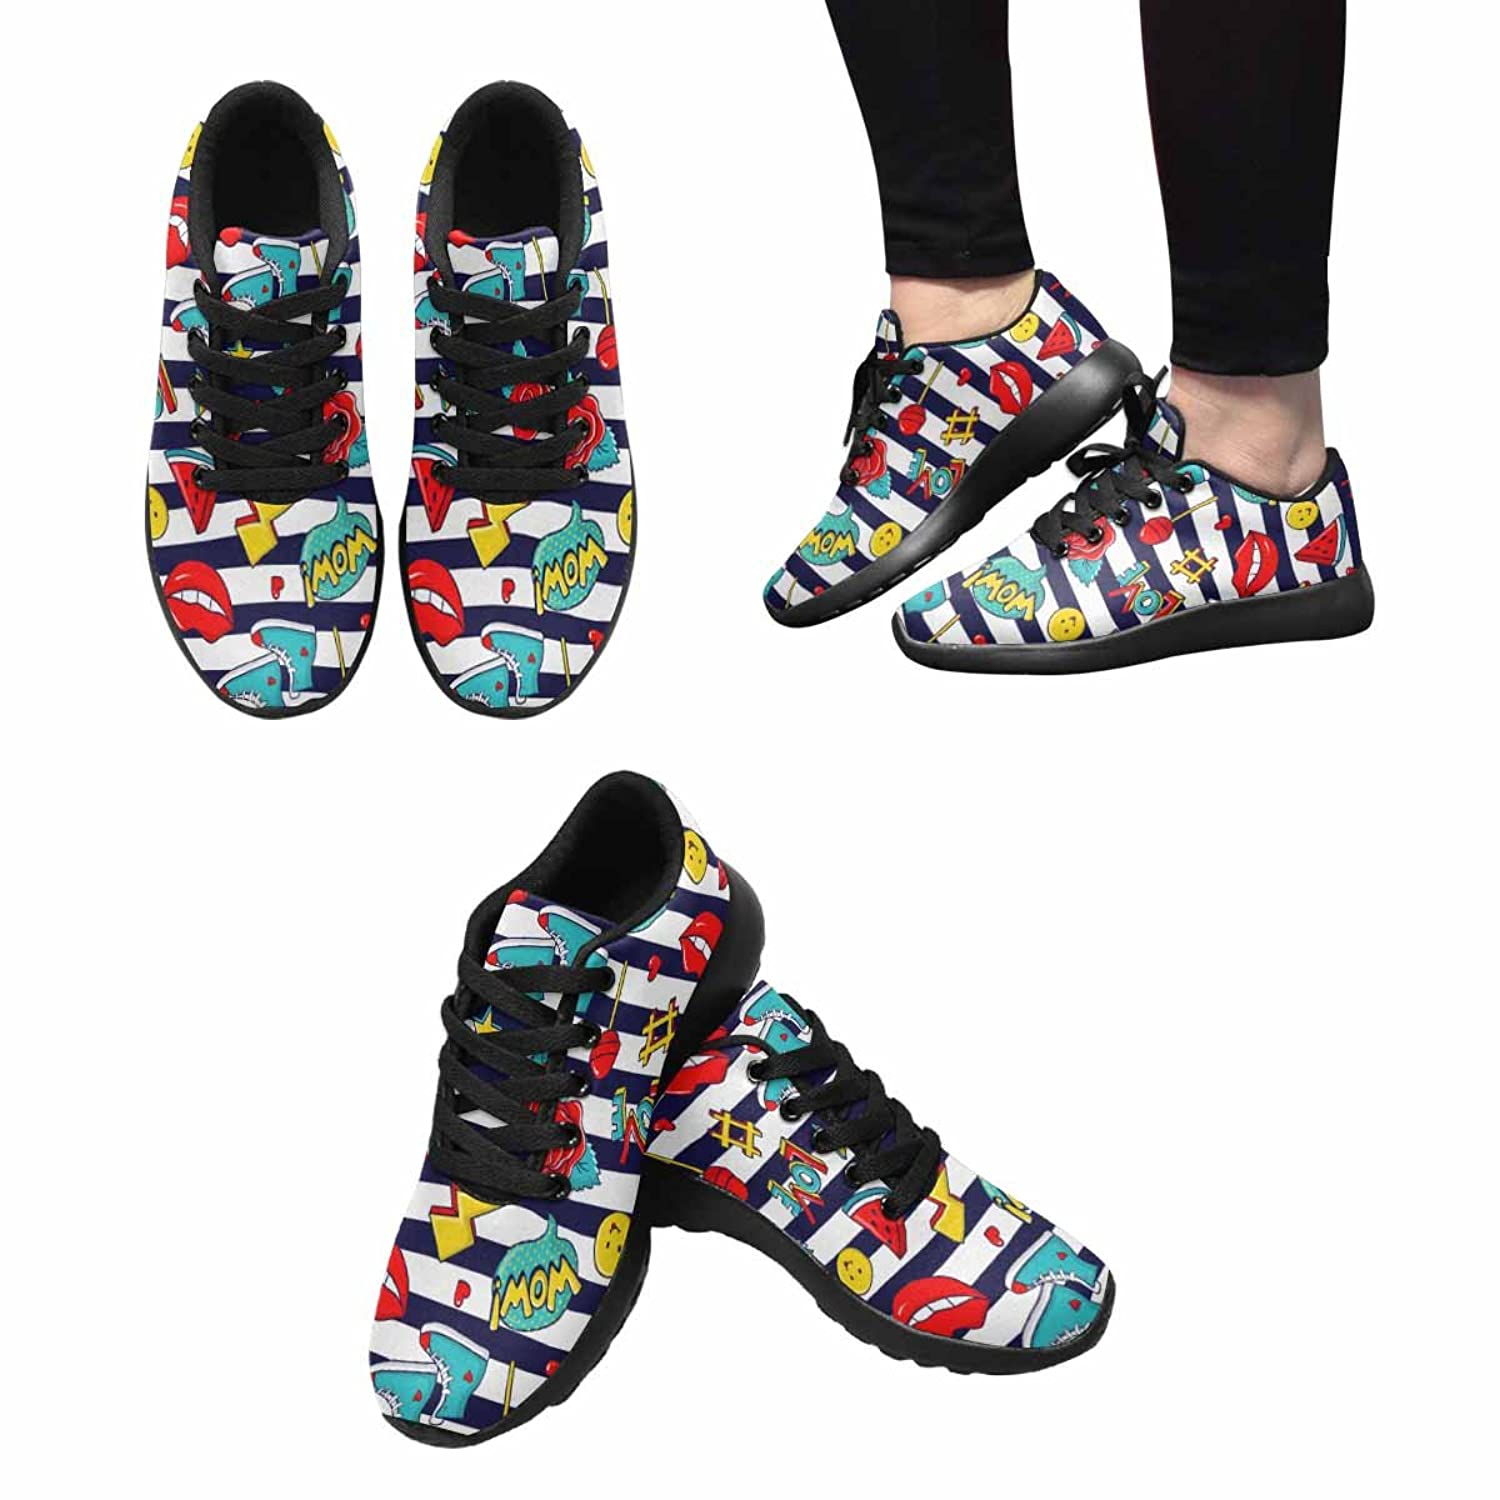 InterestPrint Women's Jogging Running Sneaker Lightweight Go Easy Walking Comfort Sports Athletic Shoes Striped Pattern With colorful Stickers